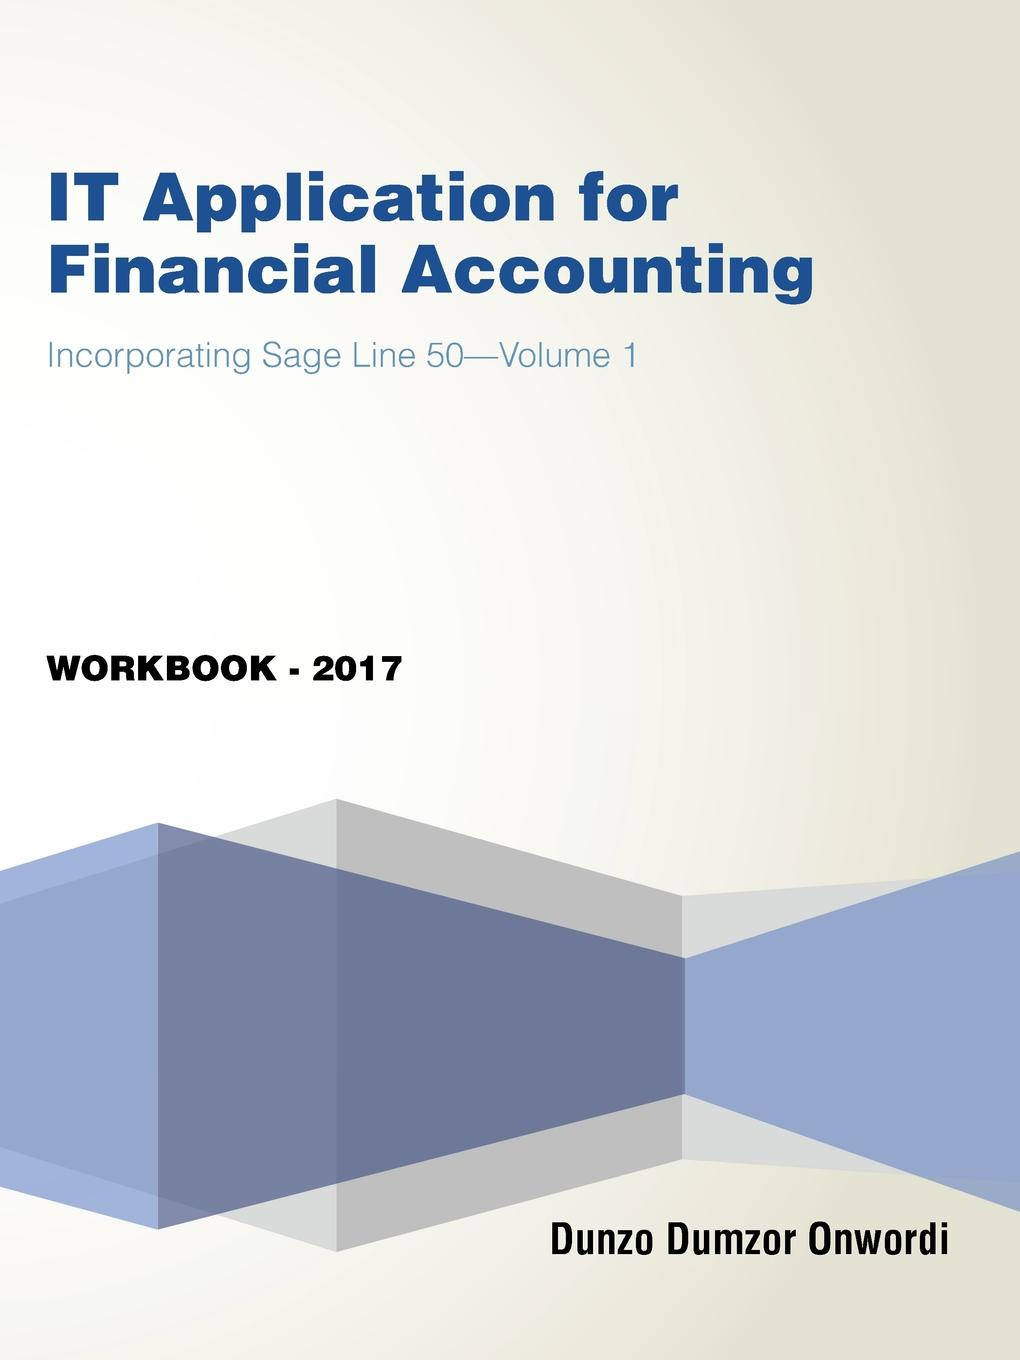 Dunzo Dumzor Onwordi IT Application for Financial Accounting. Incorporating Sage Line 50-Volume 1 effectiveness of information technology on the operations of saccos